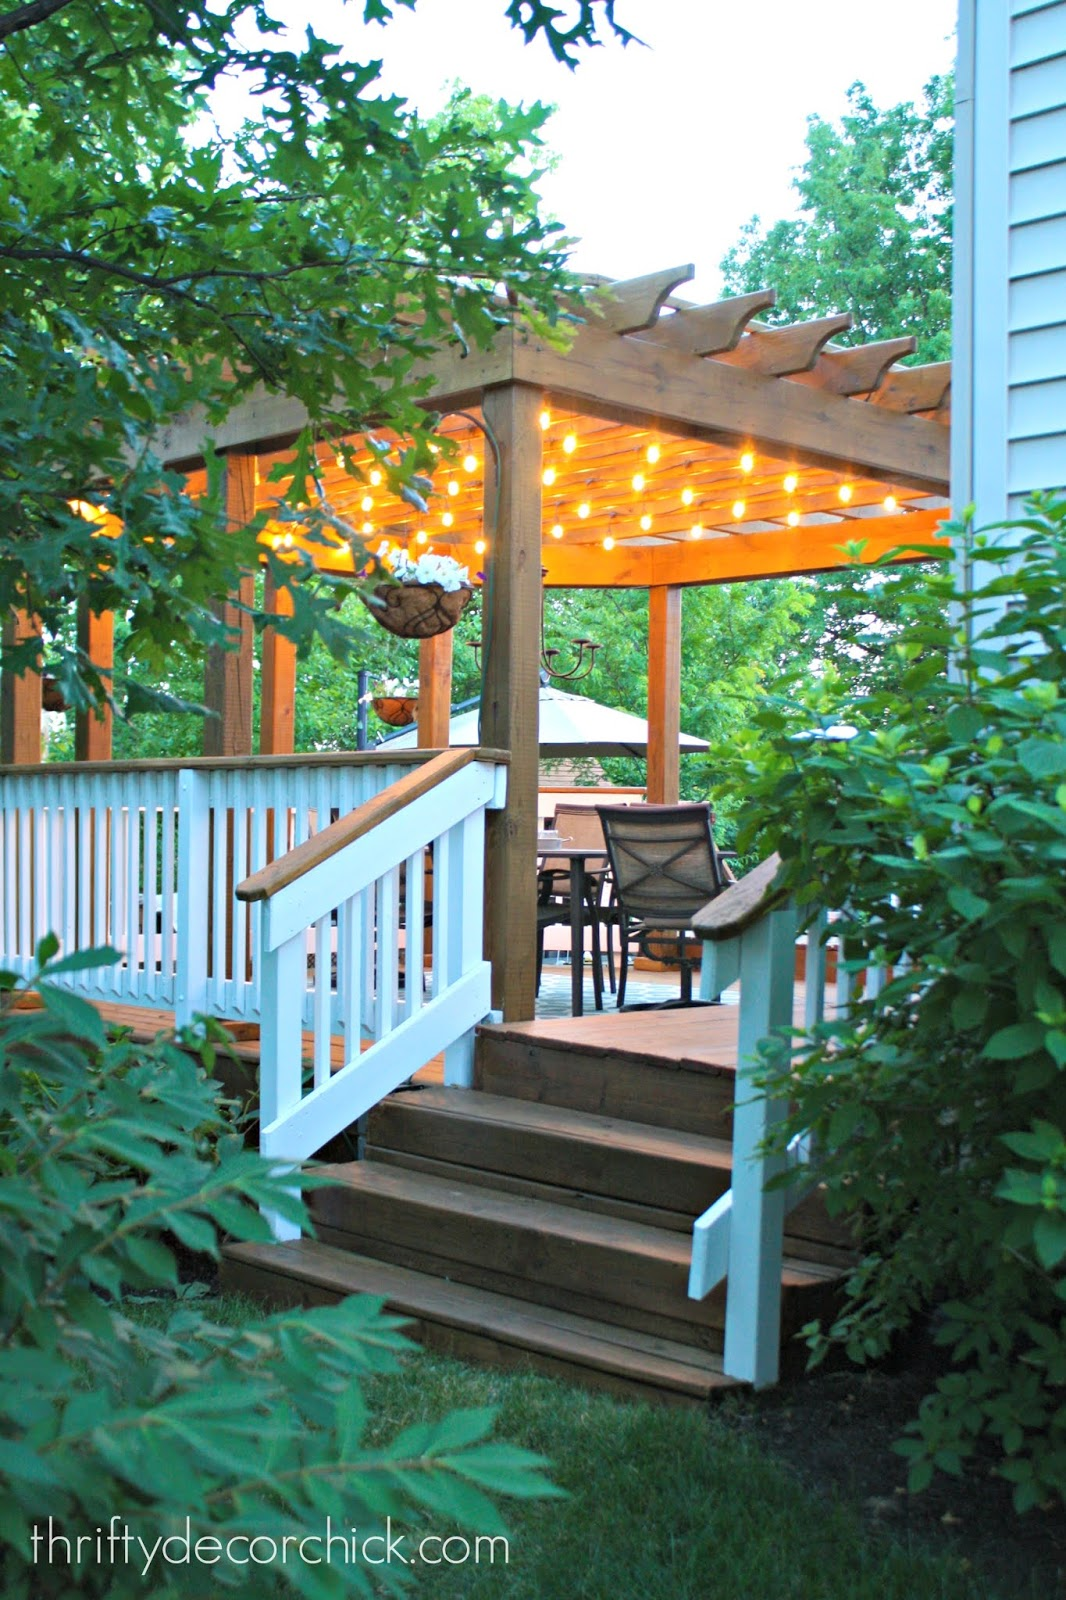 Hanging string lights under pergola